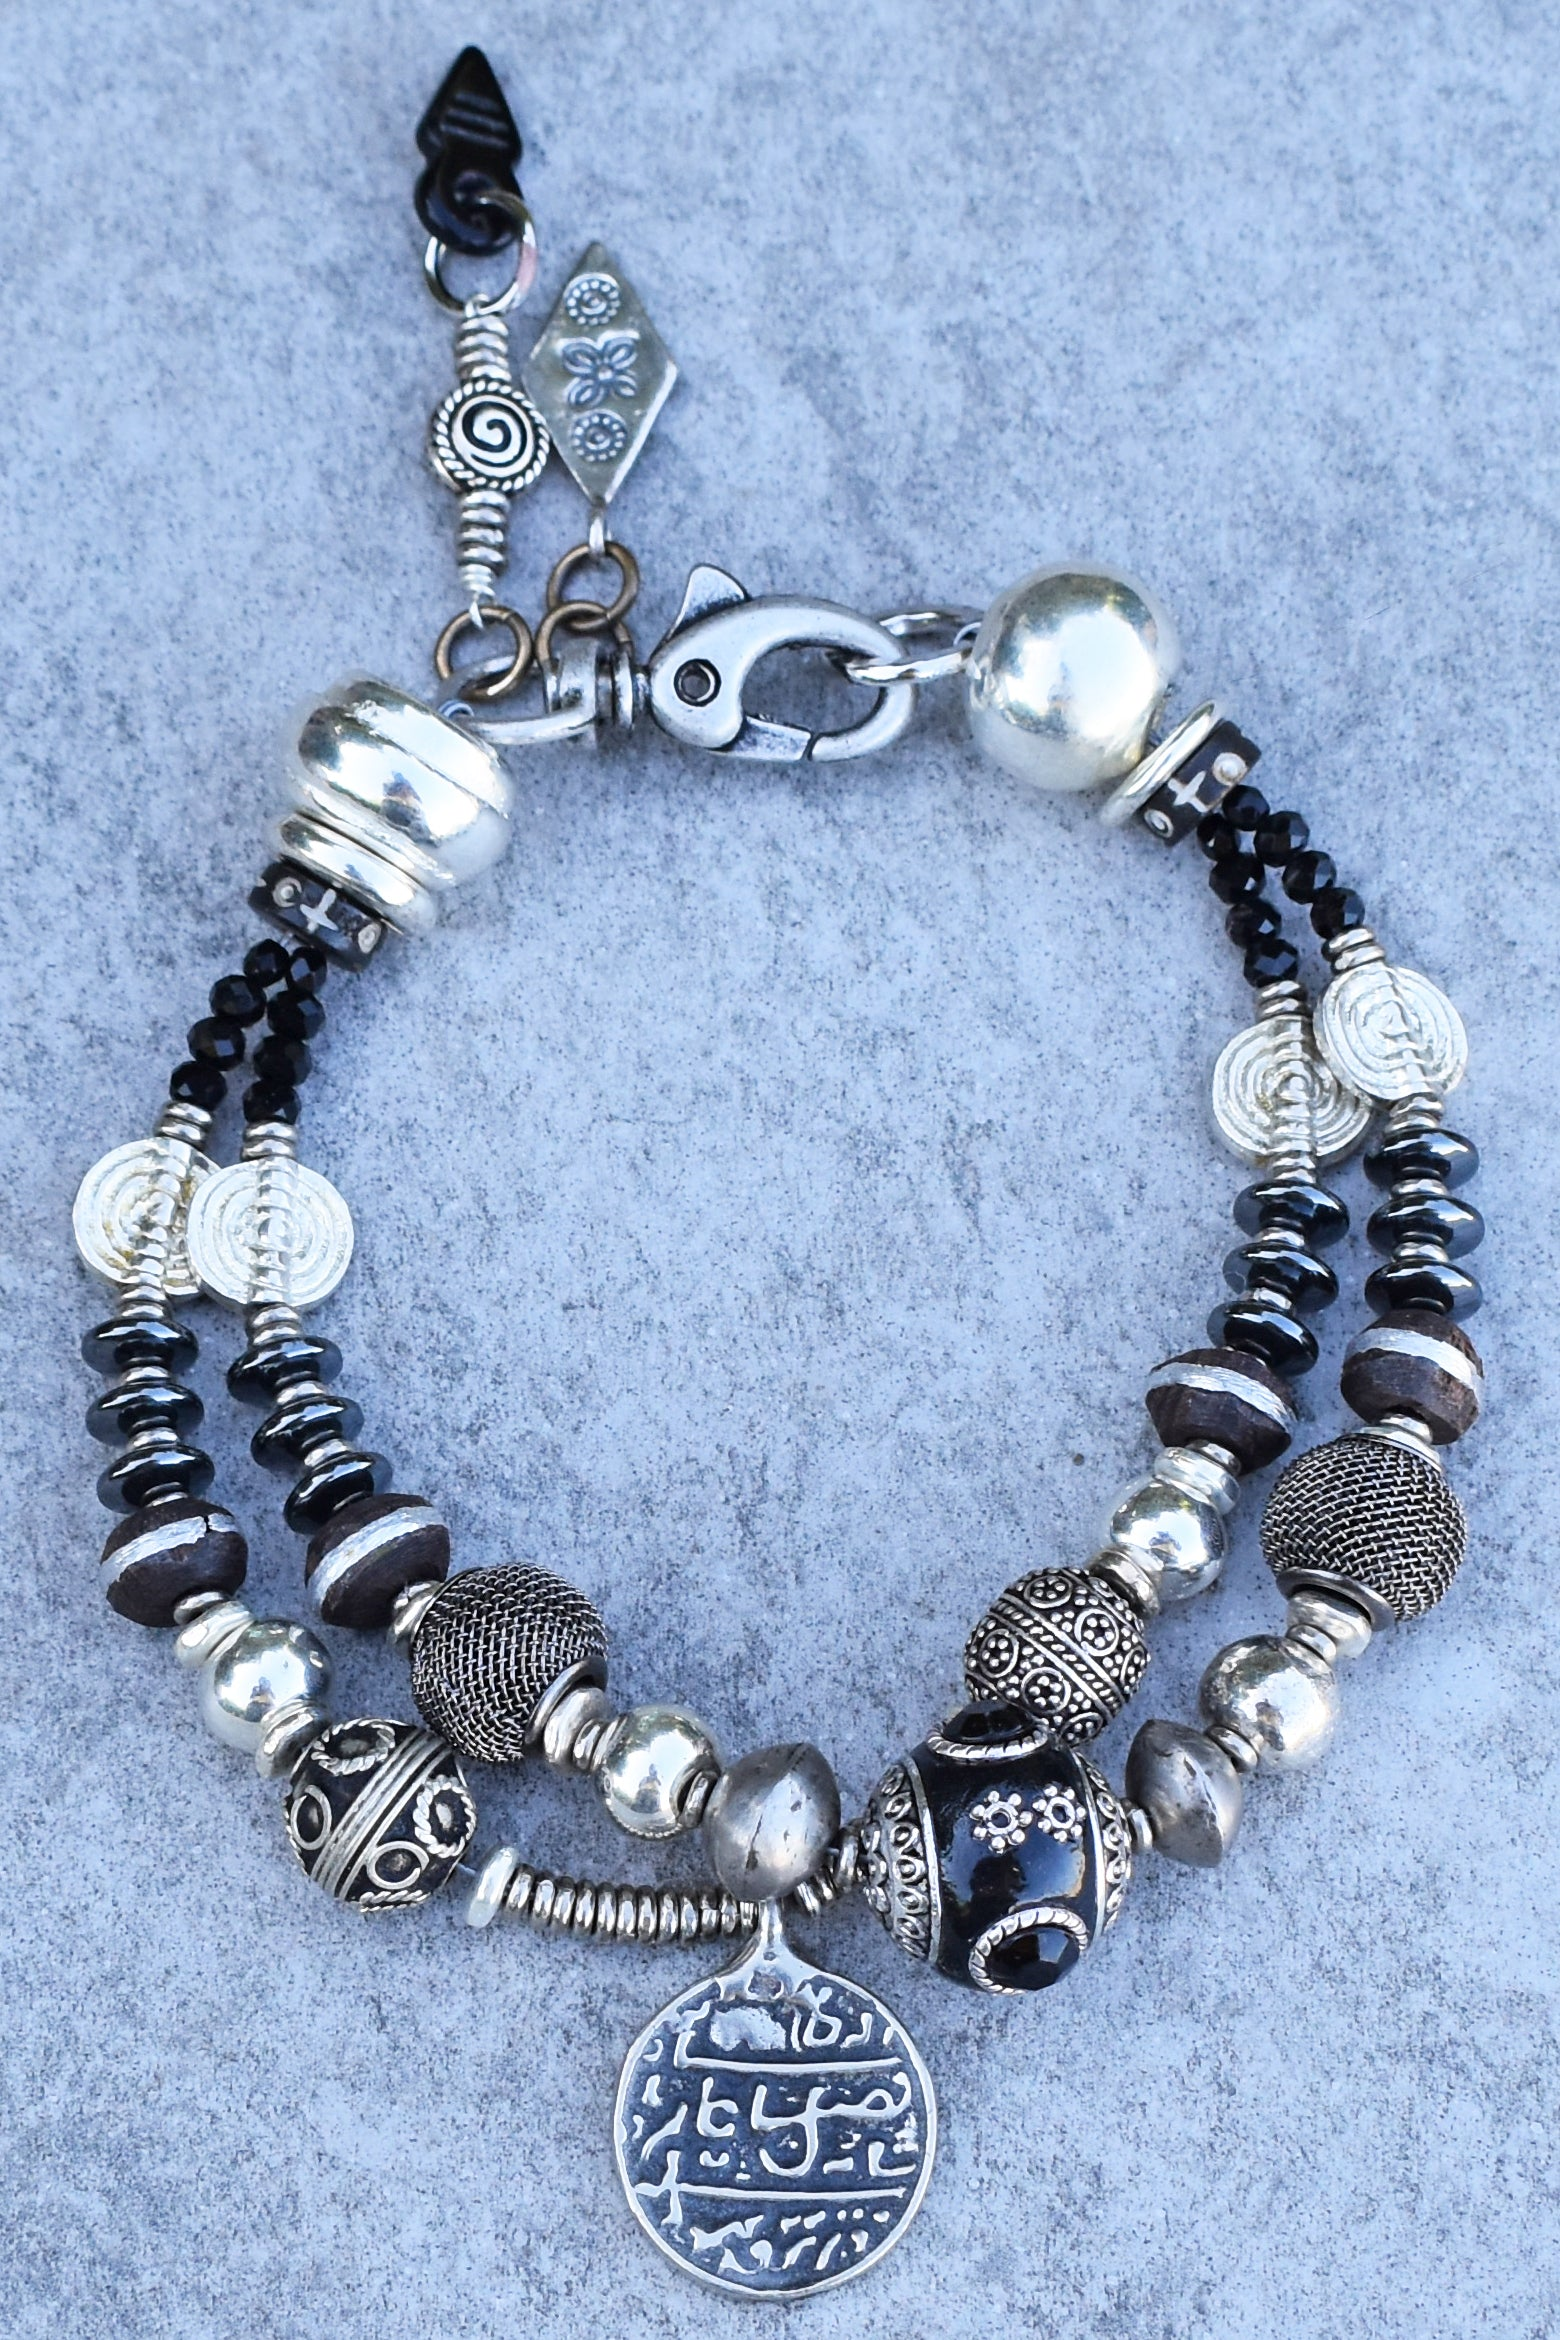 Custom Designed Fun Black, Gray and Silver Heavy Metal Charm Anklet